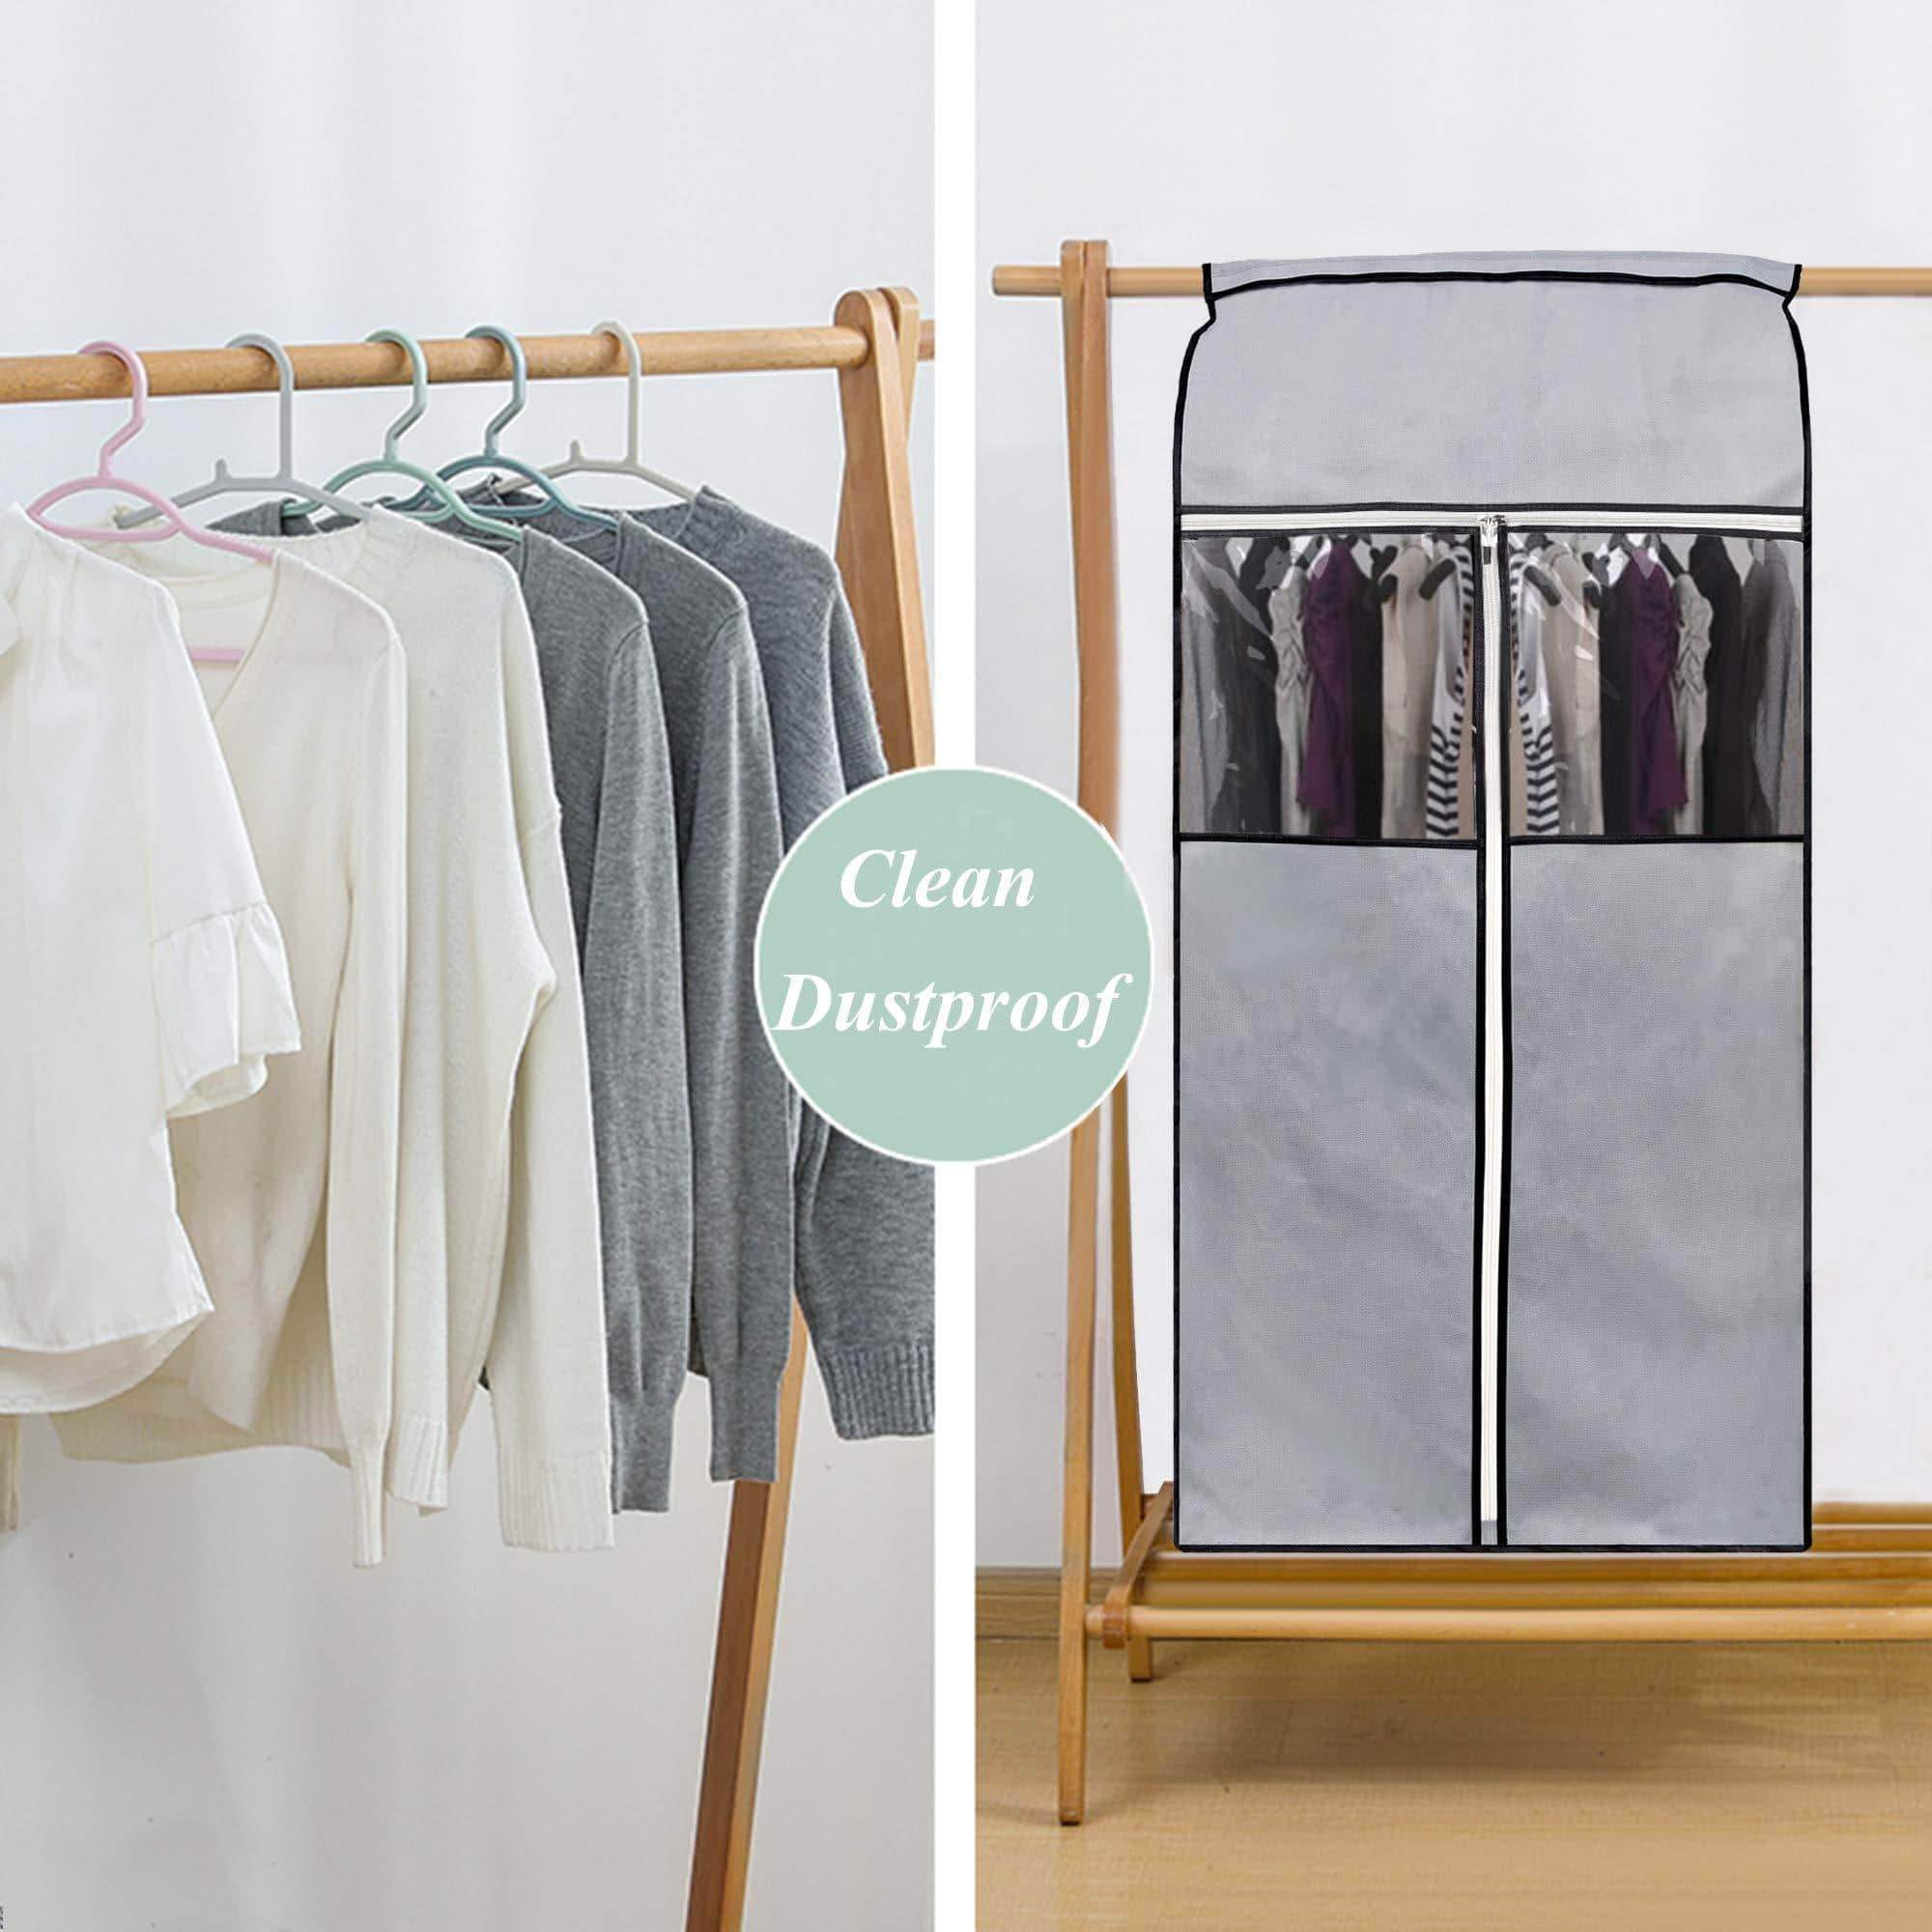 Buy sleeping lamb garment bag organizer storage with clear pvc windows garment rack cover well sealed hanging closet cover for suits coats jackets grey